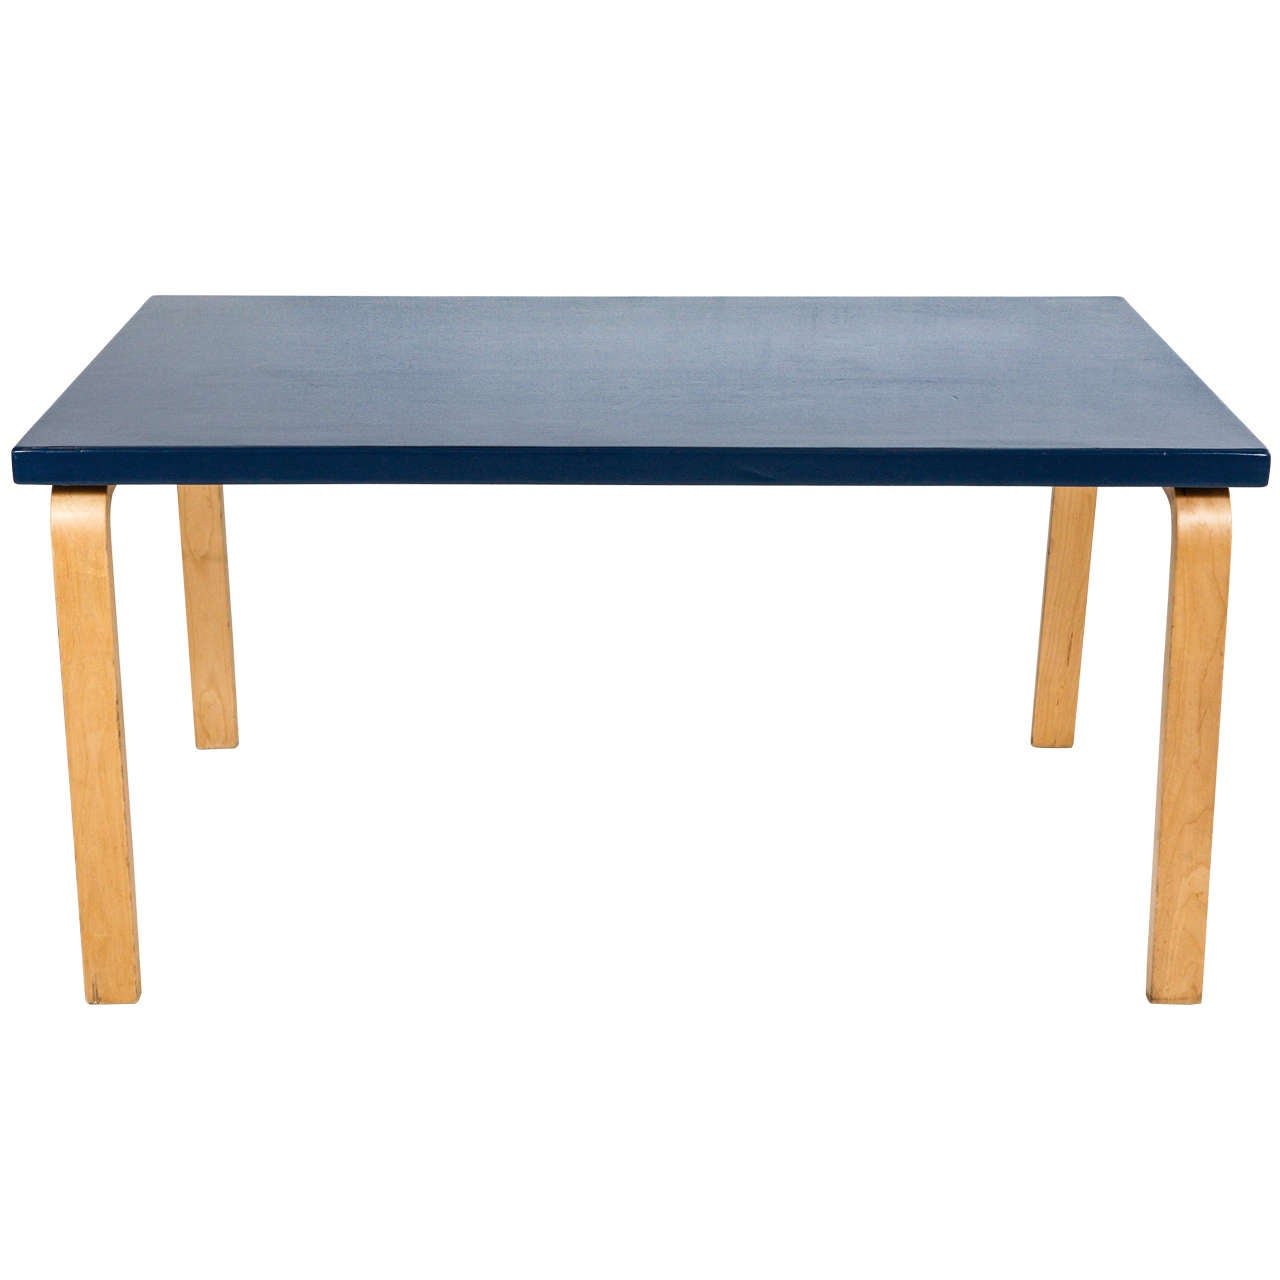 Alvar Aalto Tall Coffee Table With Lacquered Blue Top At 1stdibs